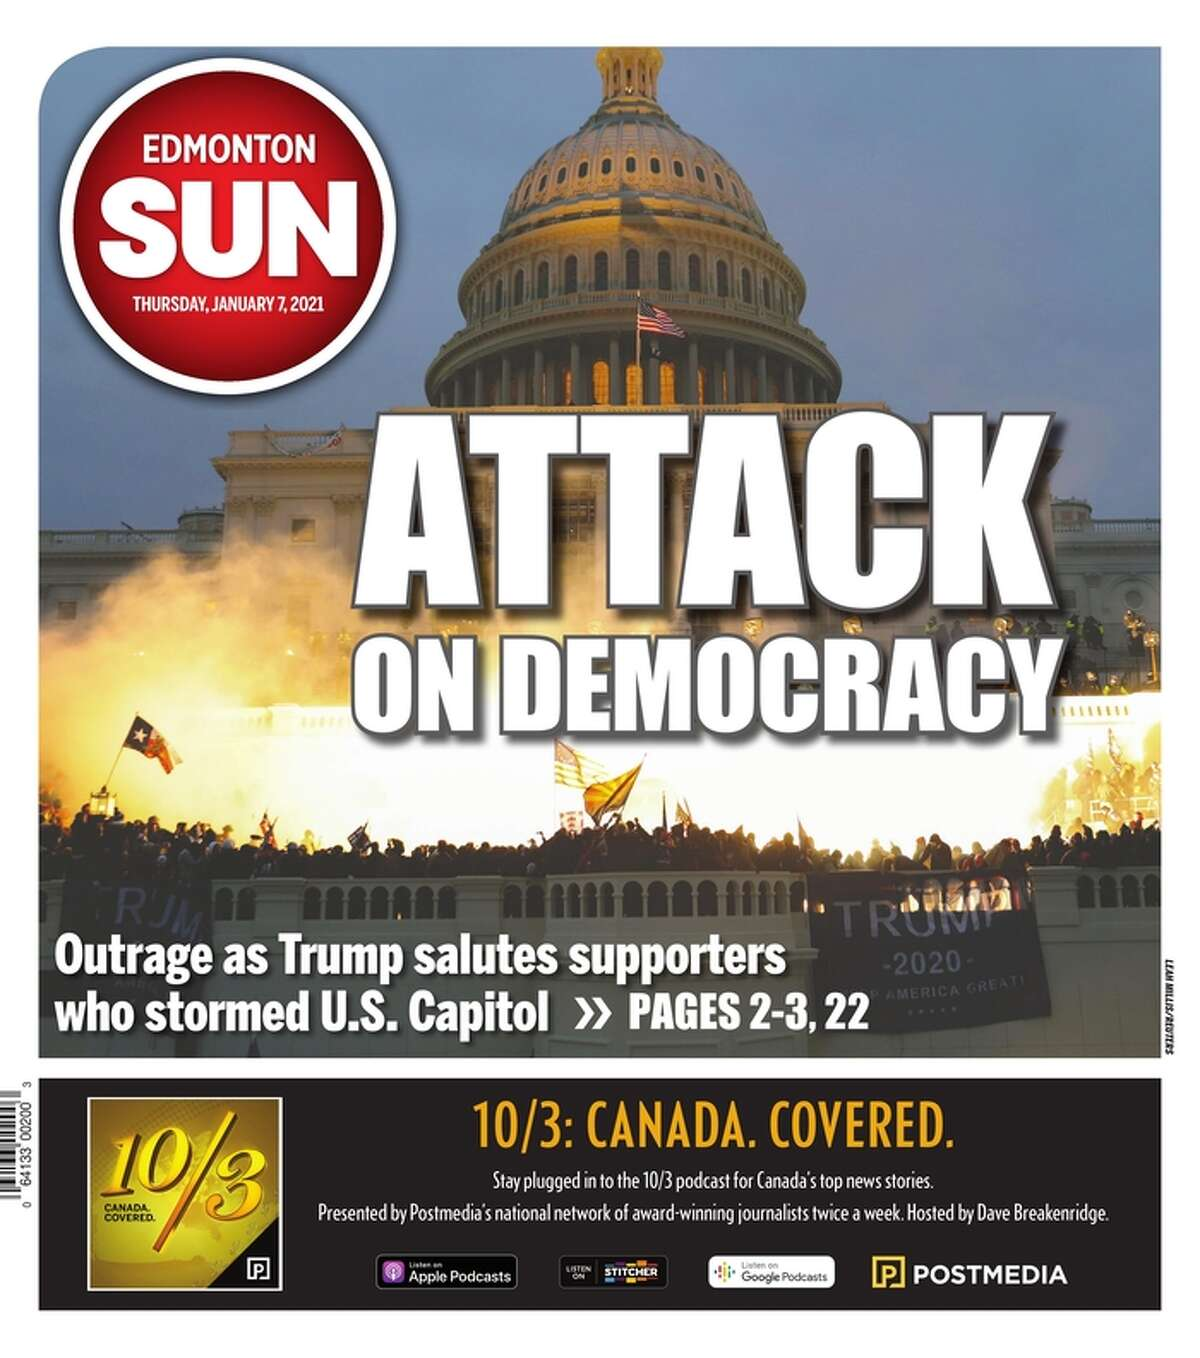 The Jan. 7 front page of the Edmonton Sun from Edmonton, Canada.